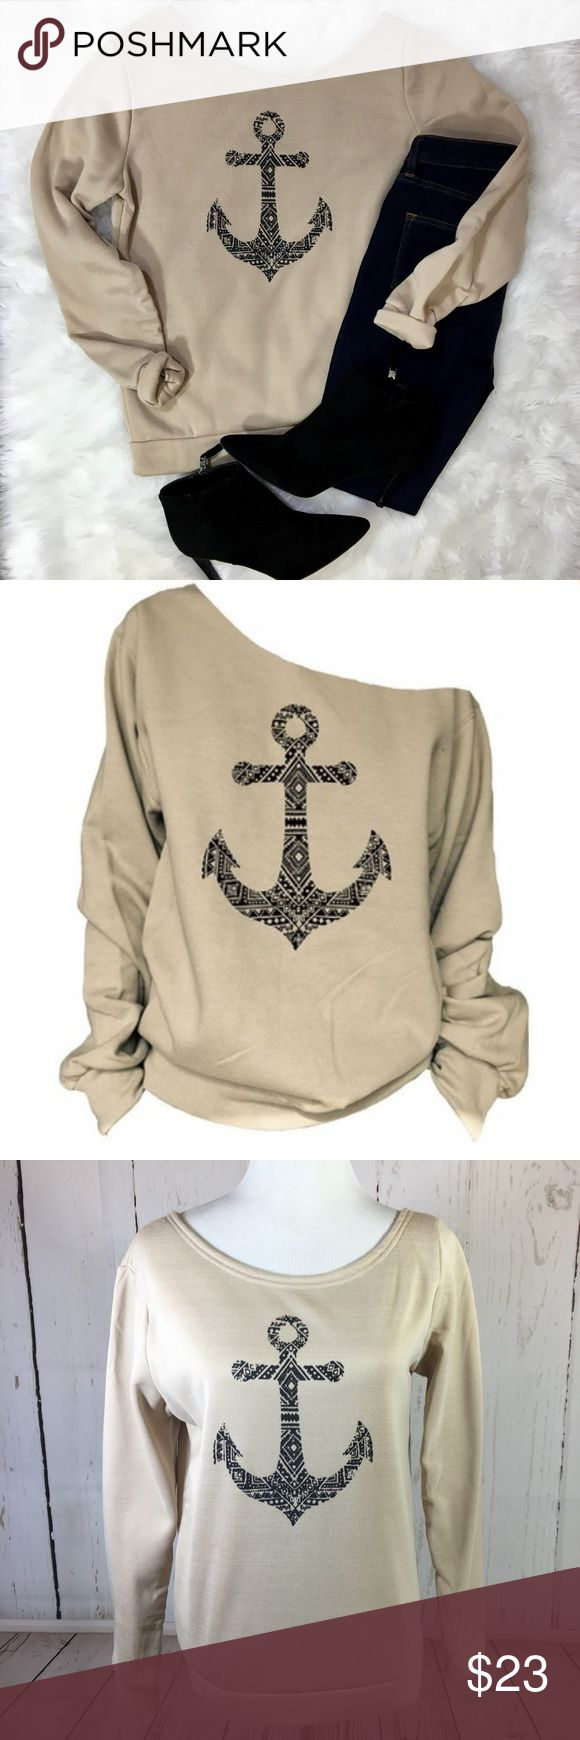 "NEW Nautical Anchor Slouchy Sweatshirt Large NEW Anchor Nautical Print Slouchy Sweatshirt Shirt Top Size Large Can be worn on or off the shoulders  Shown on a medium size mannequin  Approximate flat measurements:  Chest: 20"" Shoulders: 16"" Waist: 18"" Length from top of shoulder: 25"" Arm length: 24.5"" Tops Sweatshirts & Hoodies"